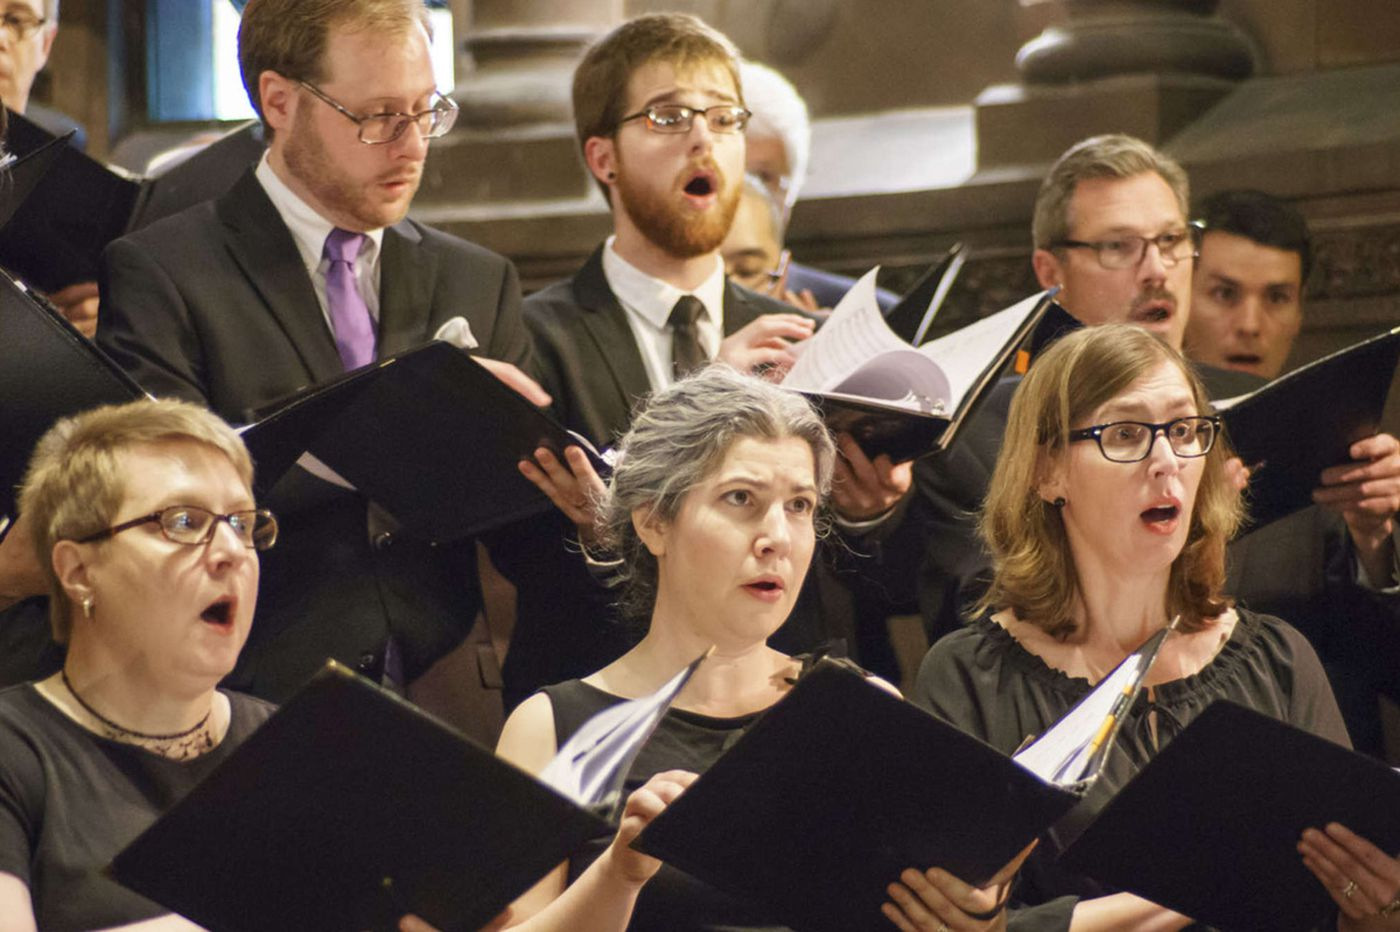 Bach - and seven brave new premieres - light up St. Clement's Church